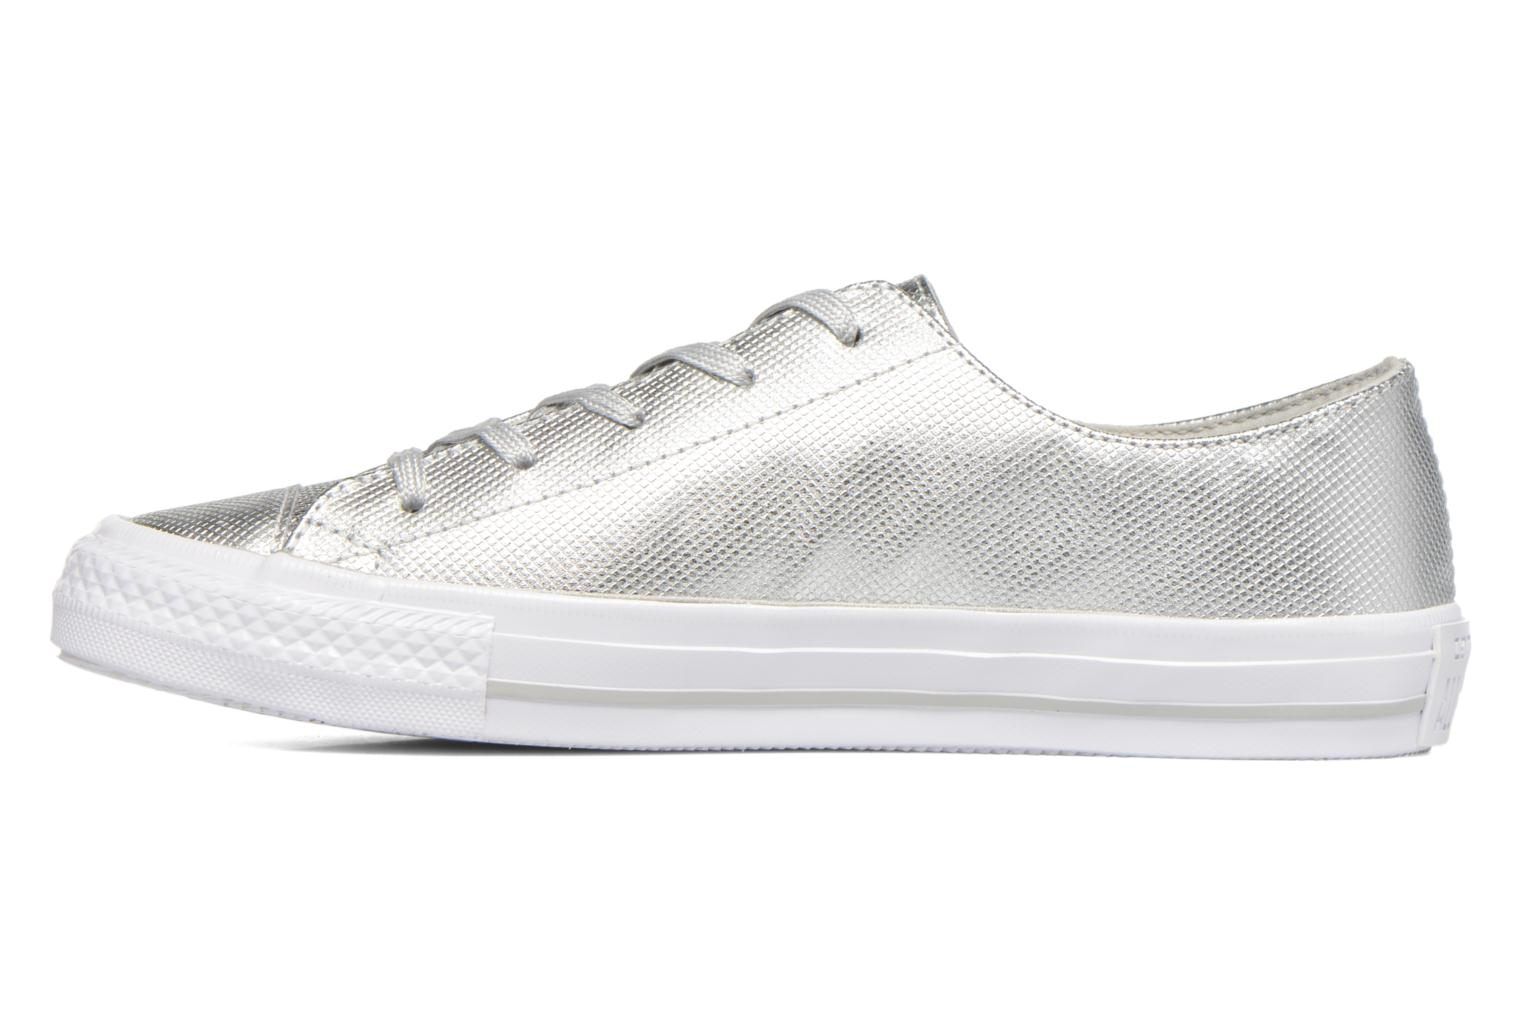 Deportivas Converse Ctas Gemma Diamond Foil Leather Ox Plateado vista de frente